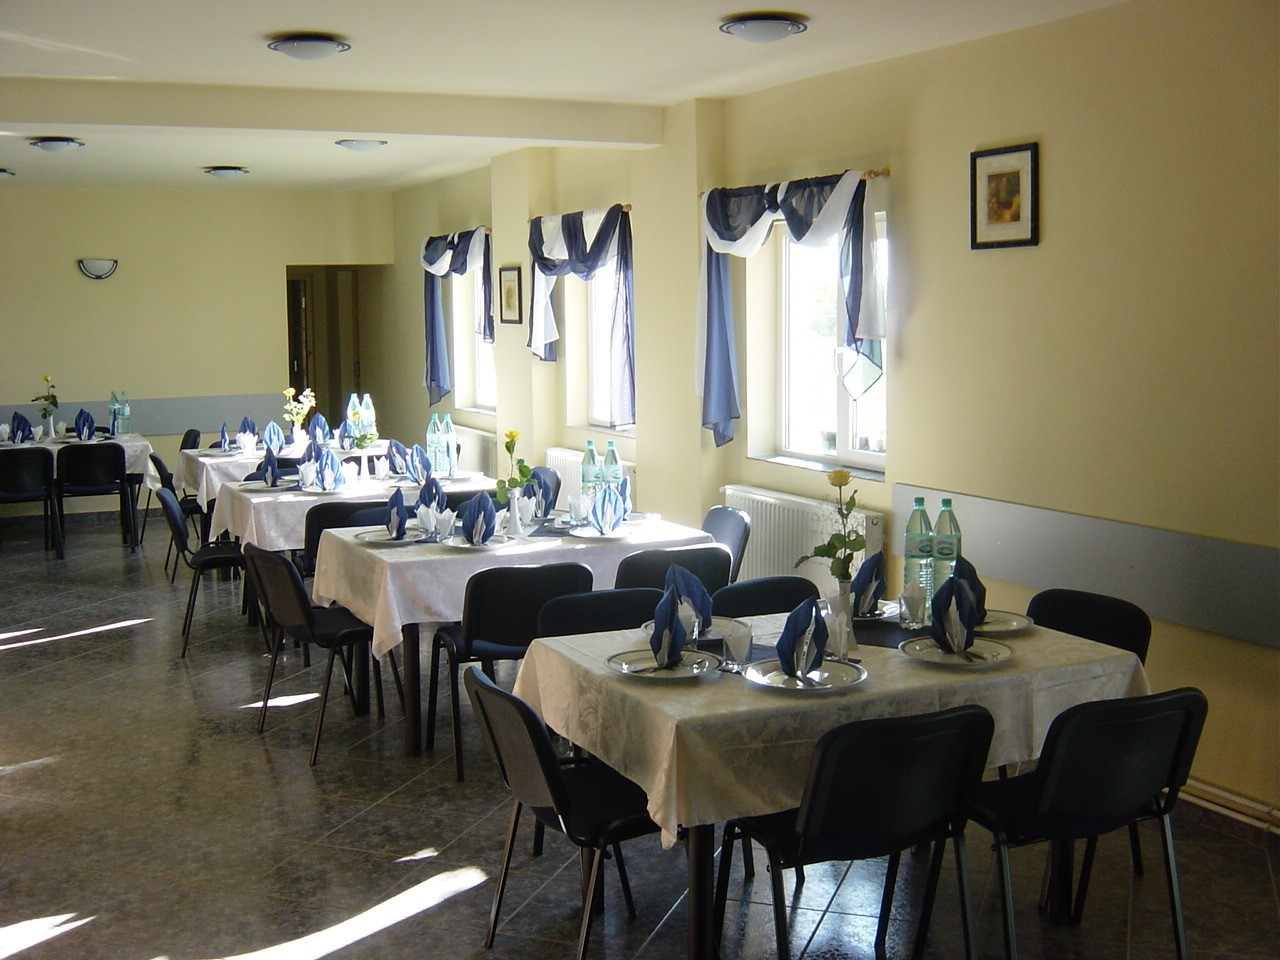 Mission Centre Dining Room